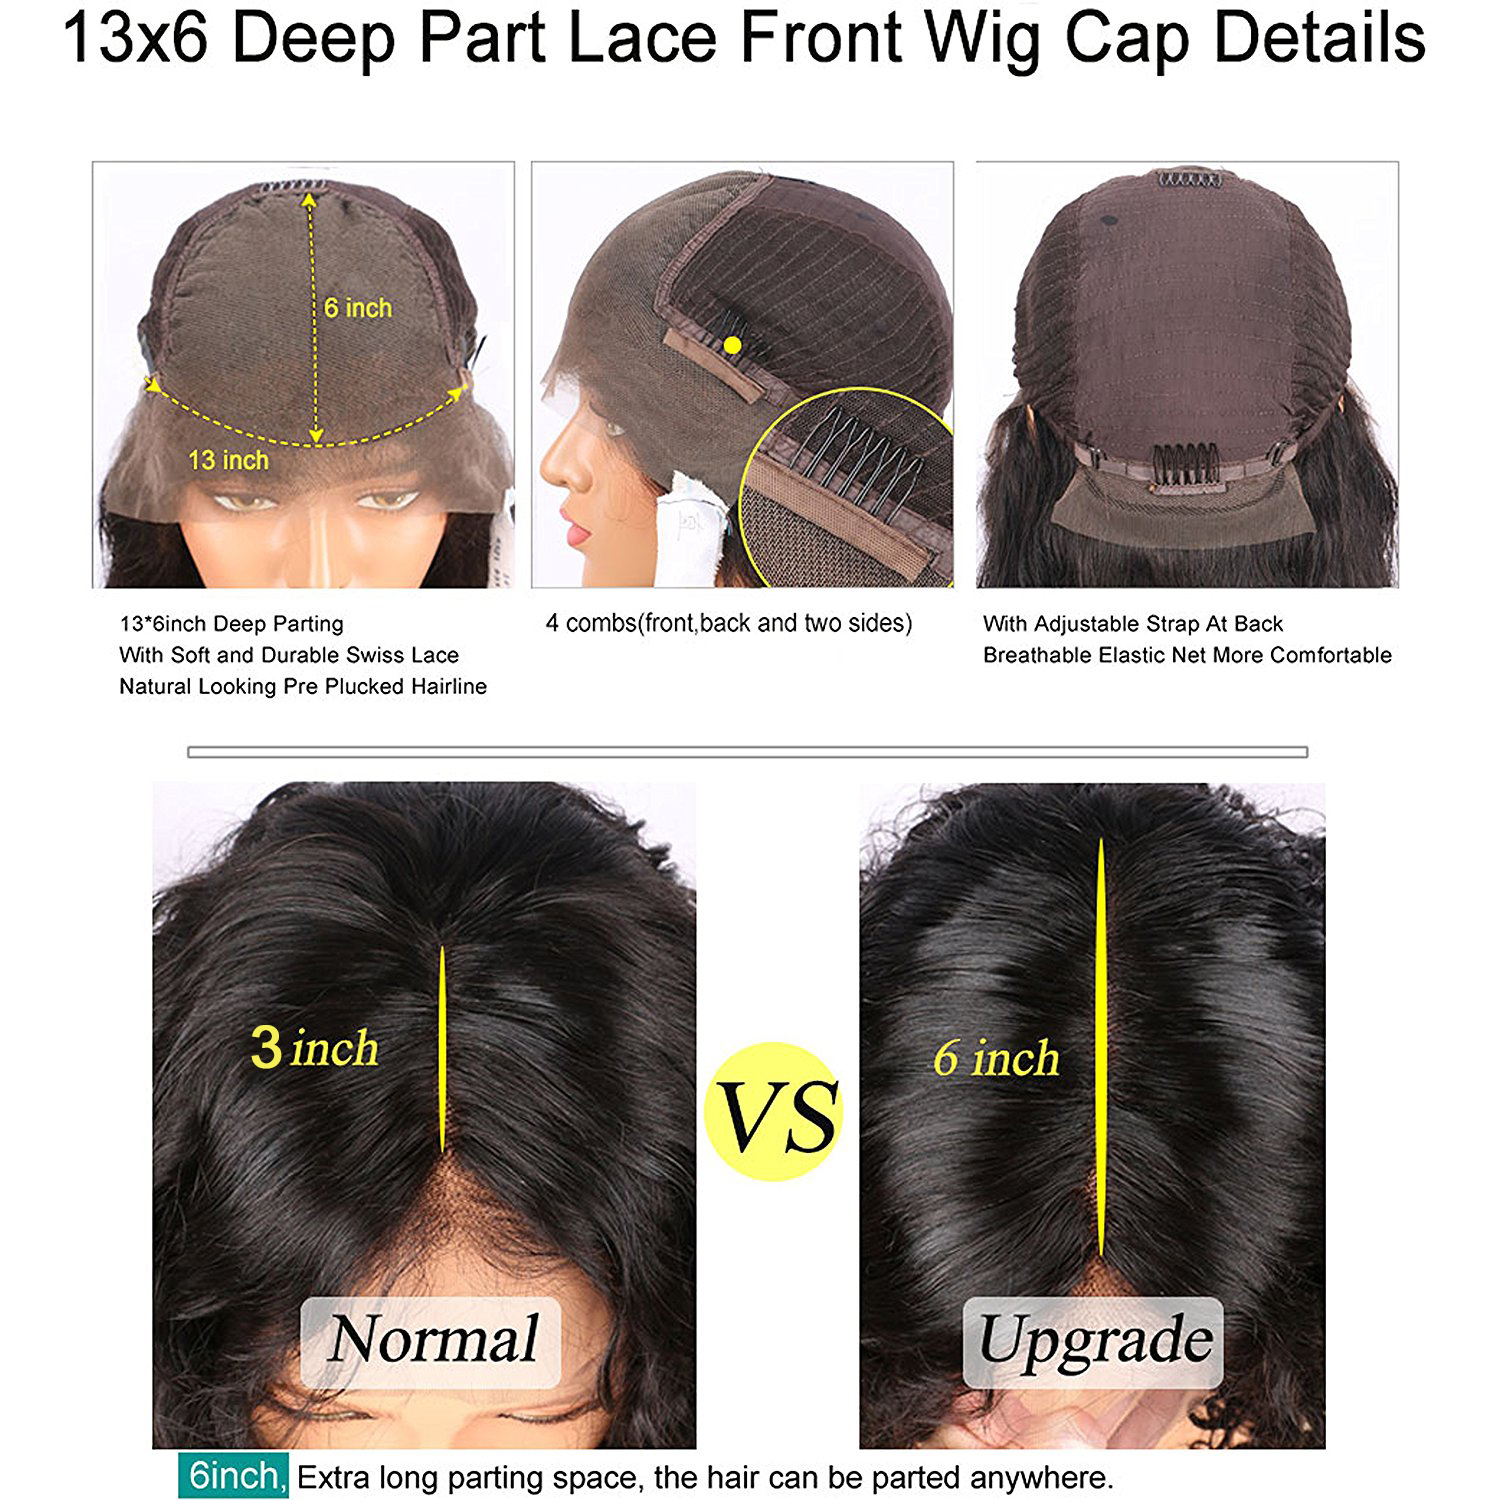 Brazilian virgin hair 13x6 lace front wigs silky straight short bob if you want to buy the wig pls leave me message including hair color hair part cap color cap size or we will send u free part medium brown cap color nvjuhfo Images